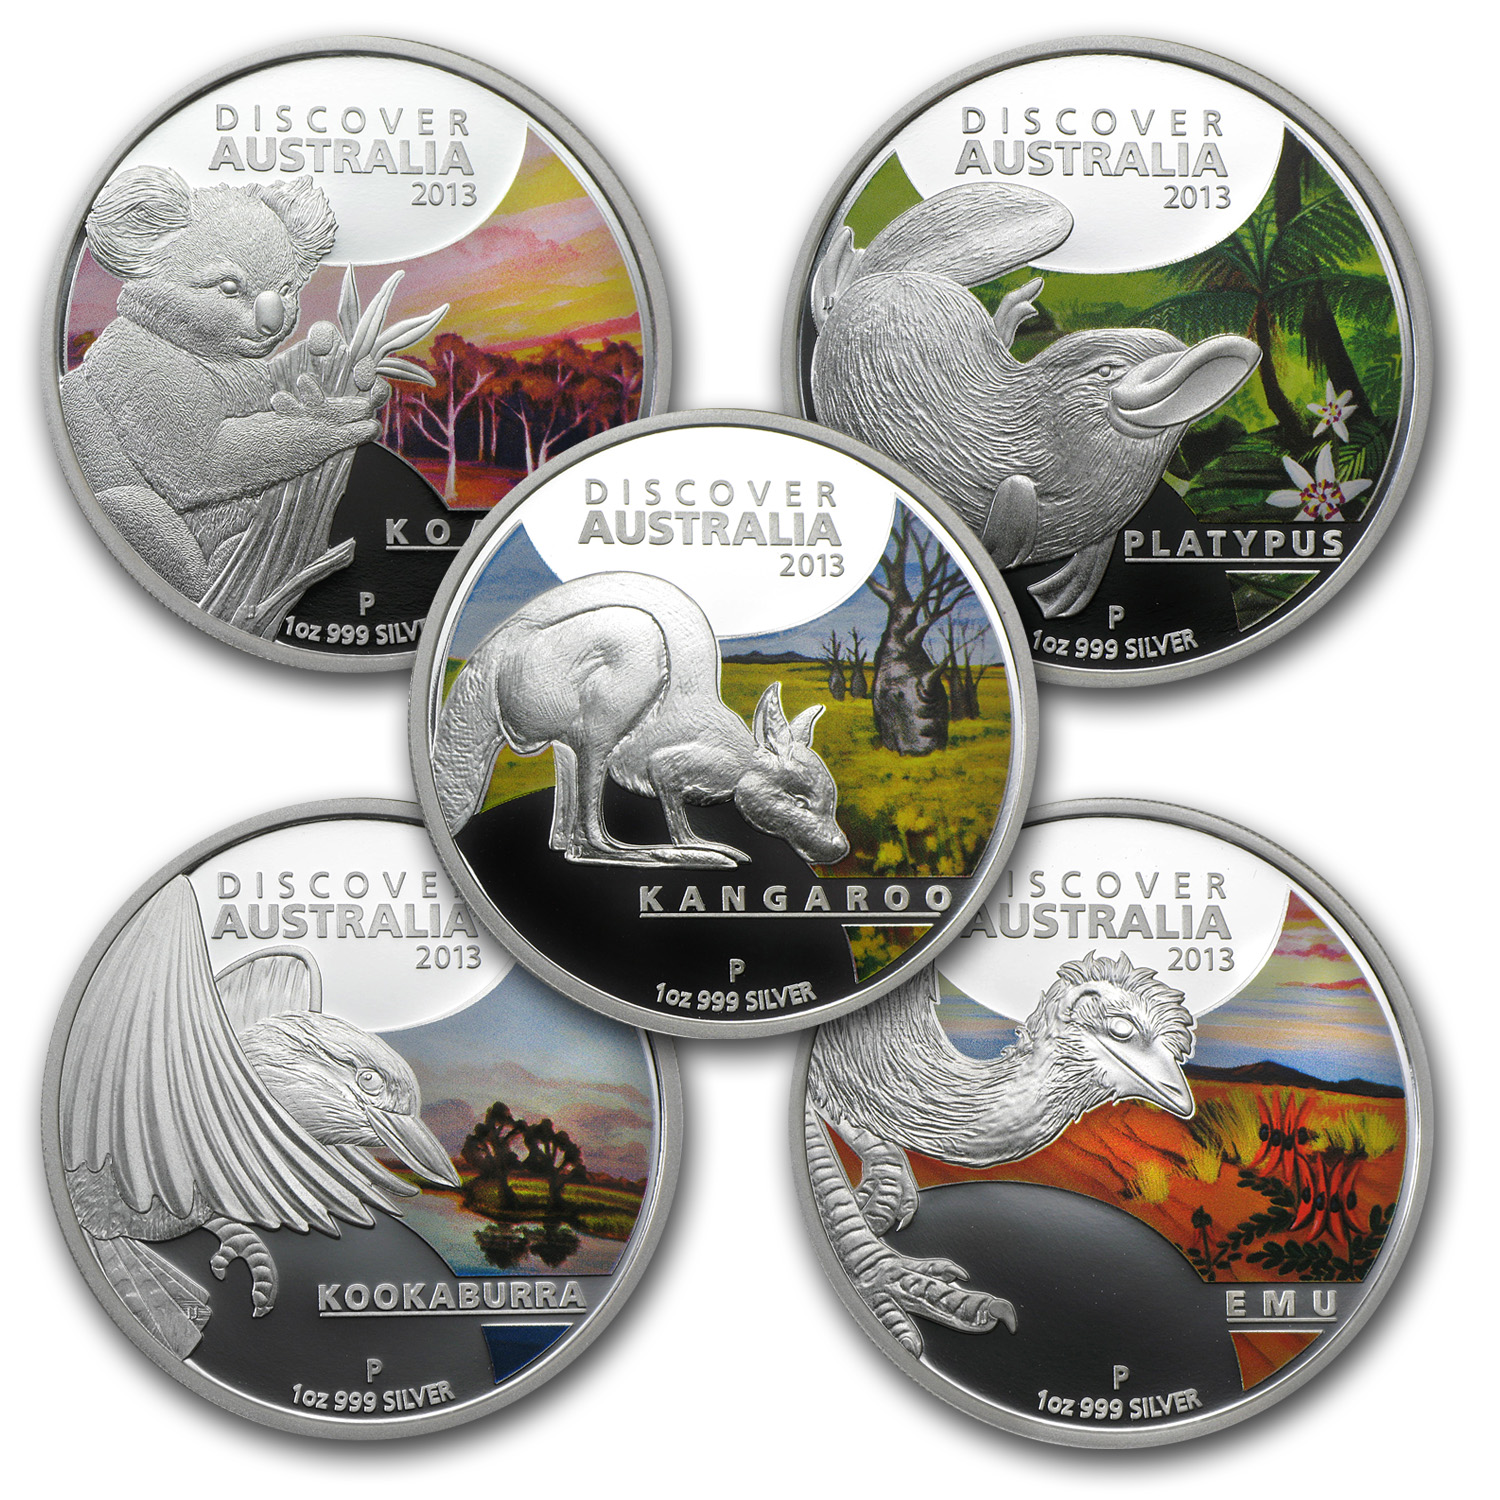 2013 5-Coin 1 oz Silver Discover Australia Proof Set